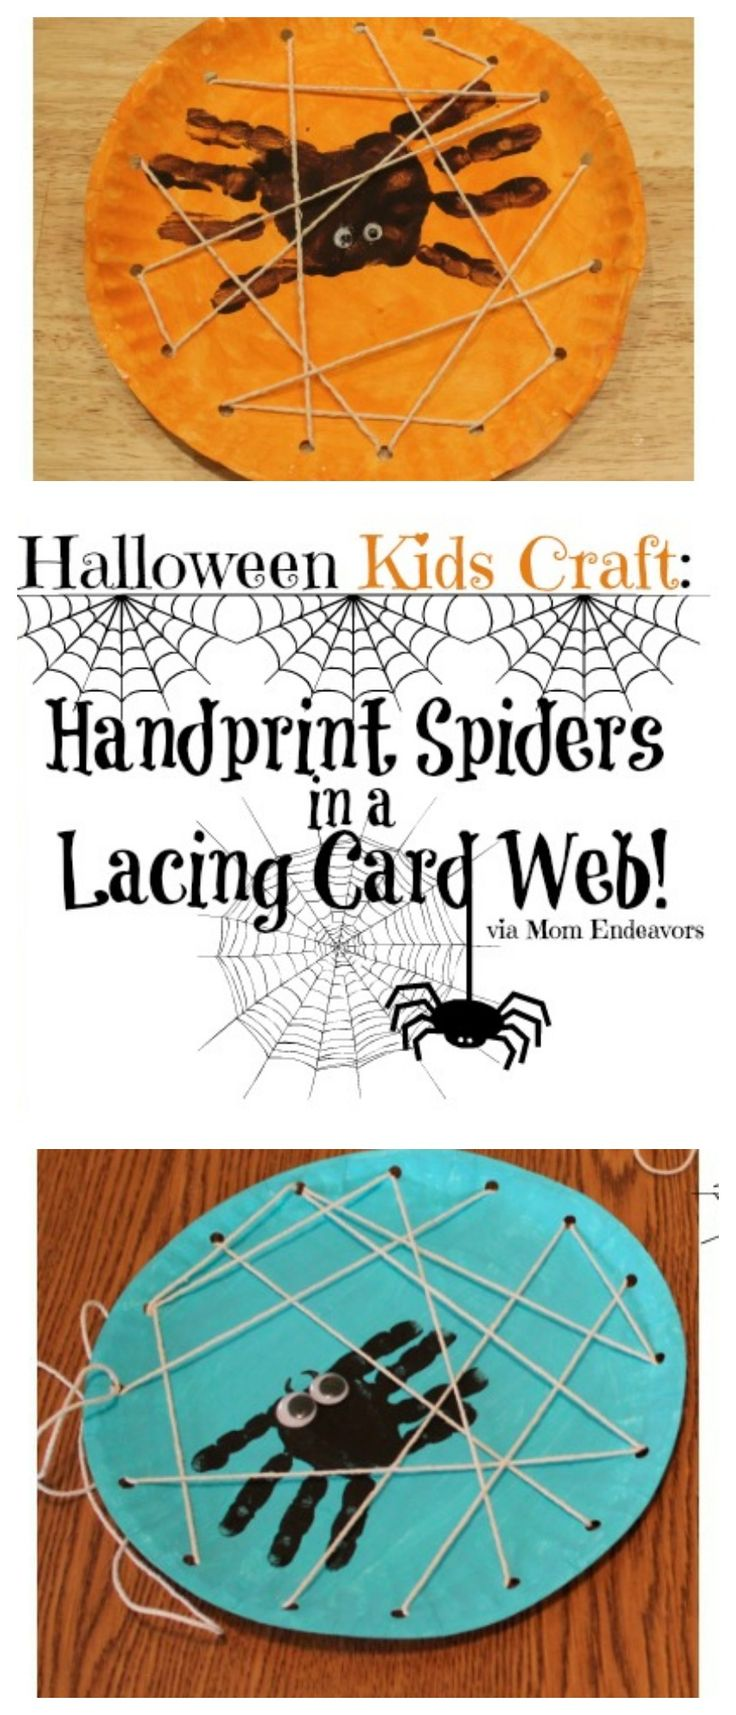 Handprint Spiders in a Lacing Card Web. What a great idea! Definitely a must-do this Halloween.